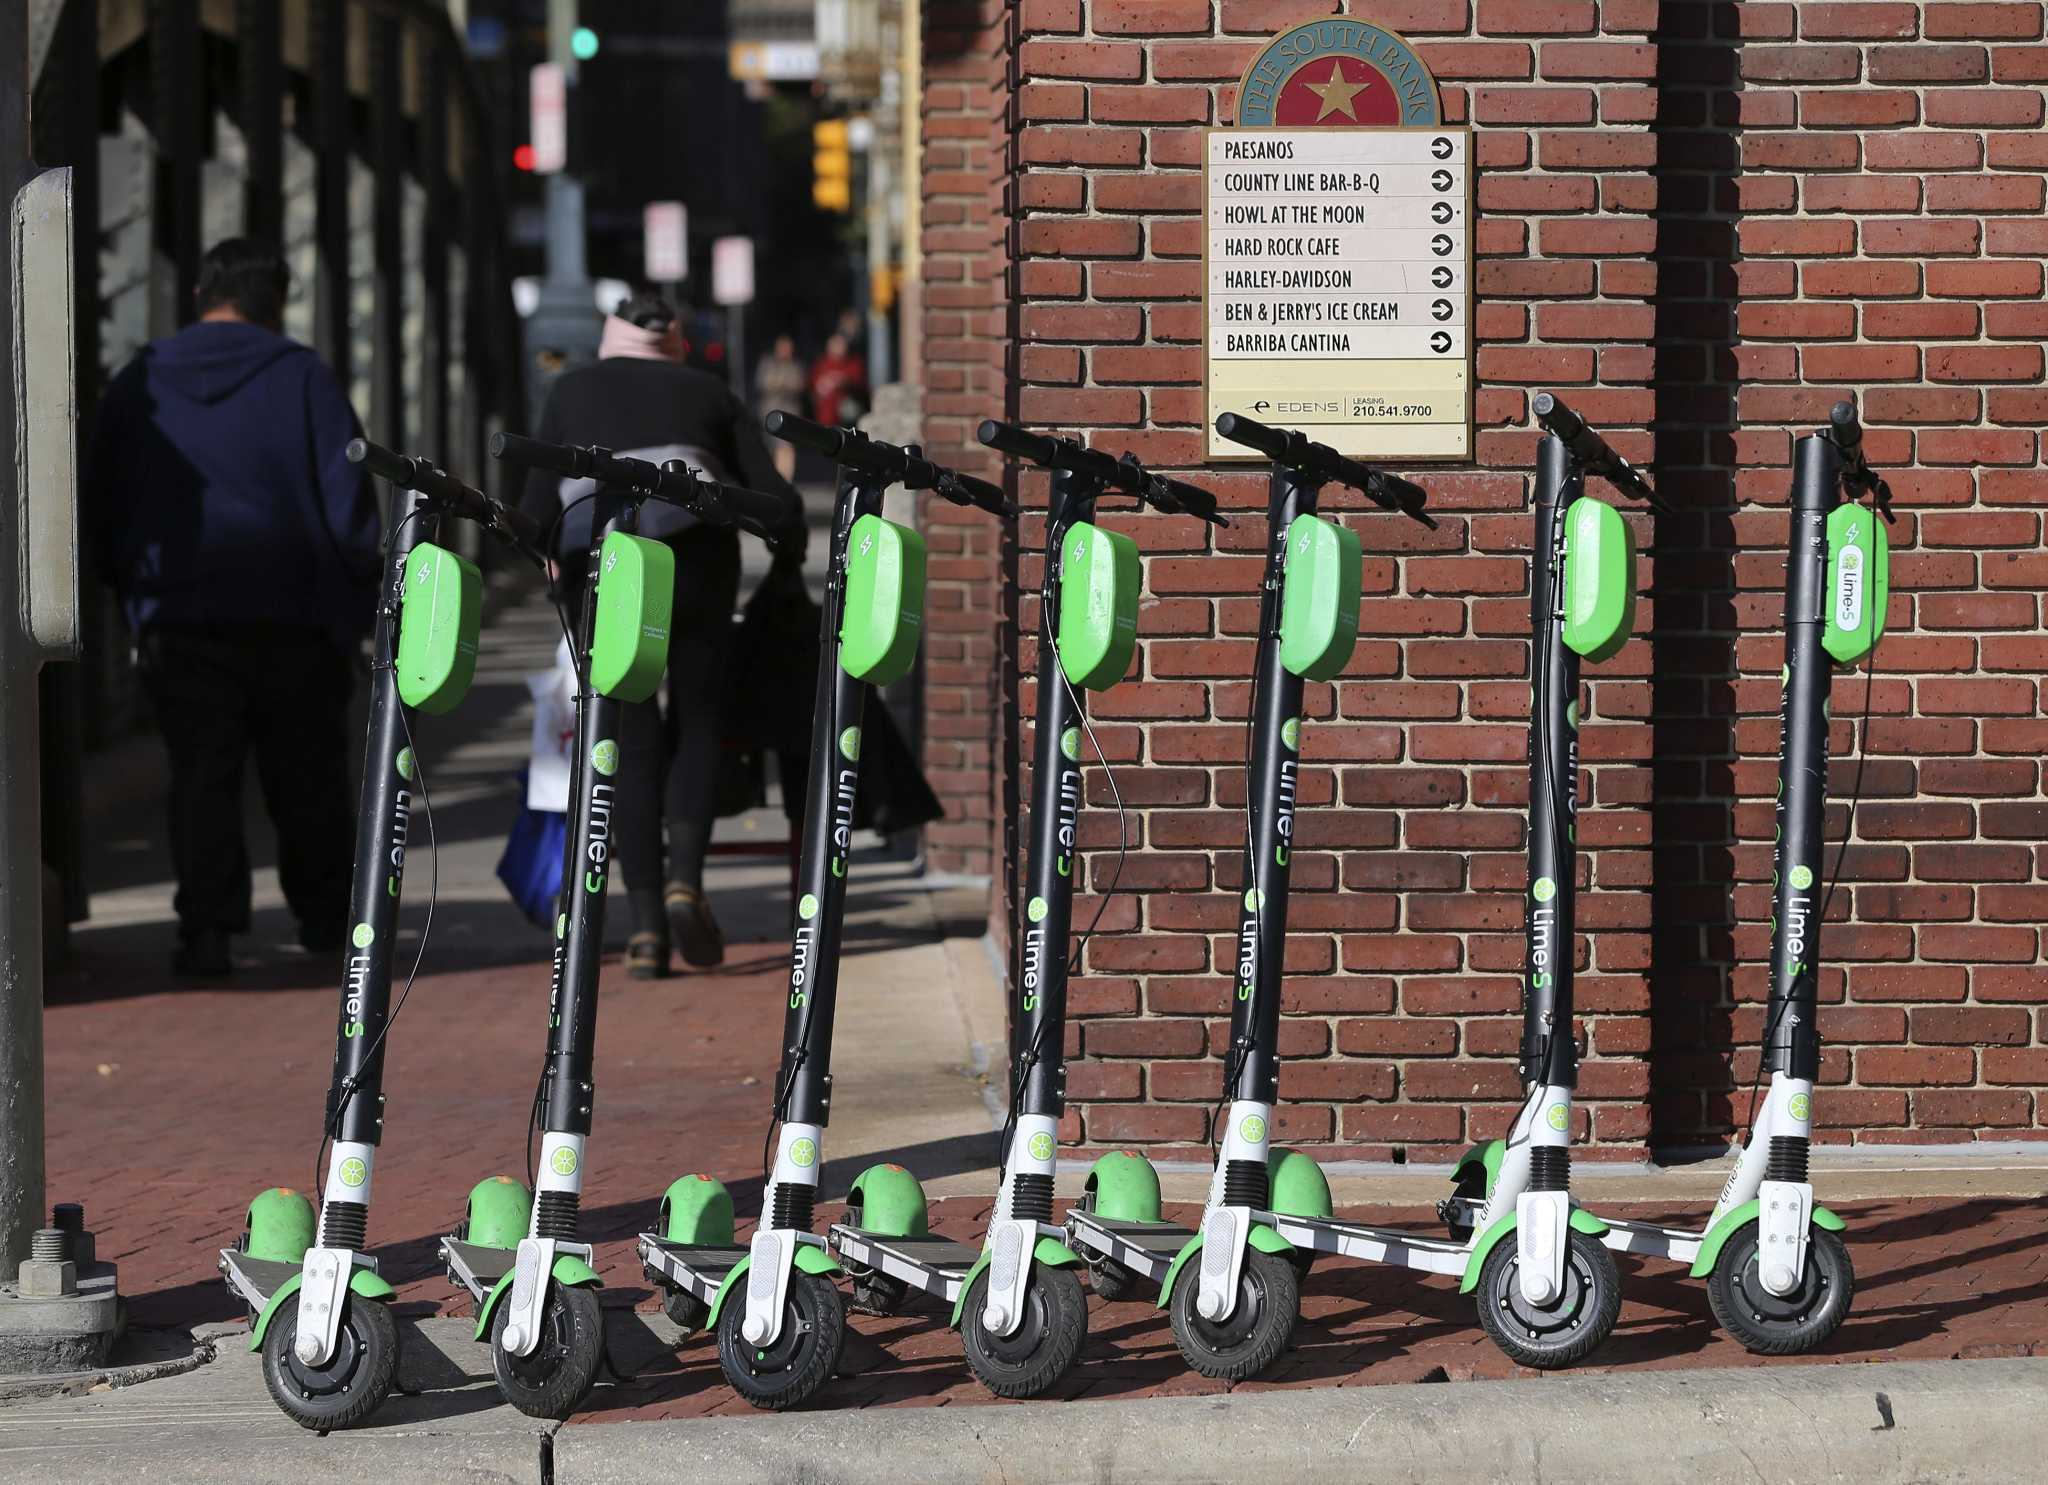 Google Maps is now giving directions via Lime scooters in San